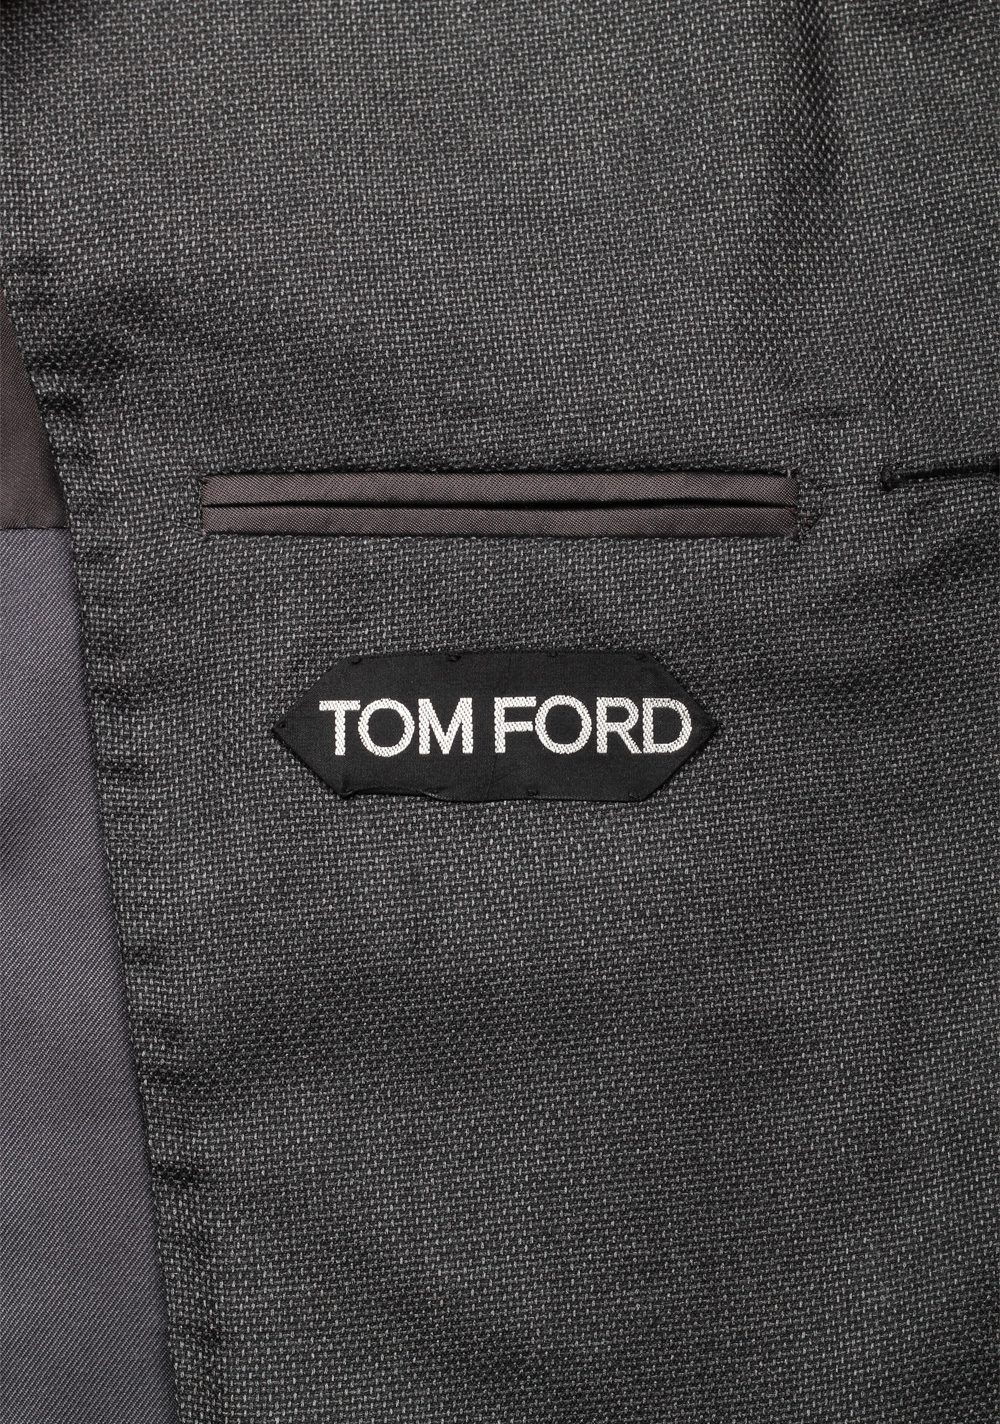 TOM FORD Shelton Gray Sport Coat Size 46 / 36R In Silk Cashmere | Costume Limité